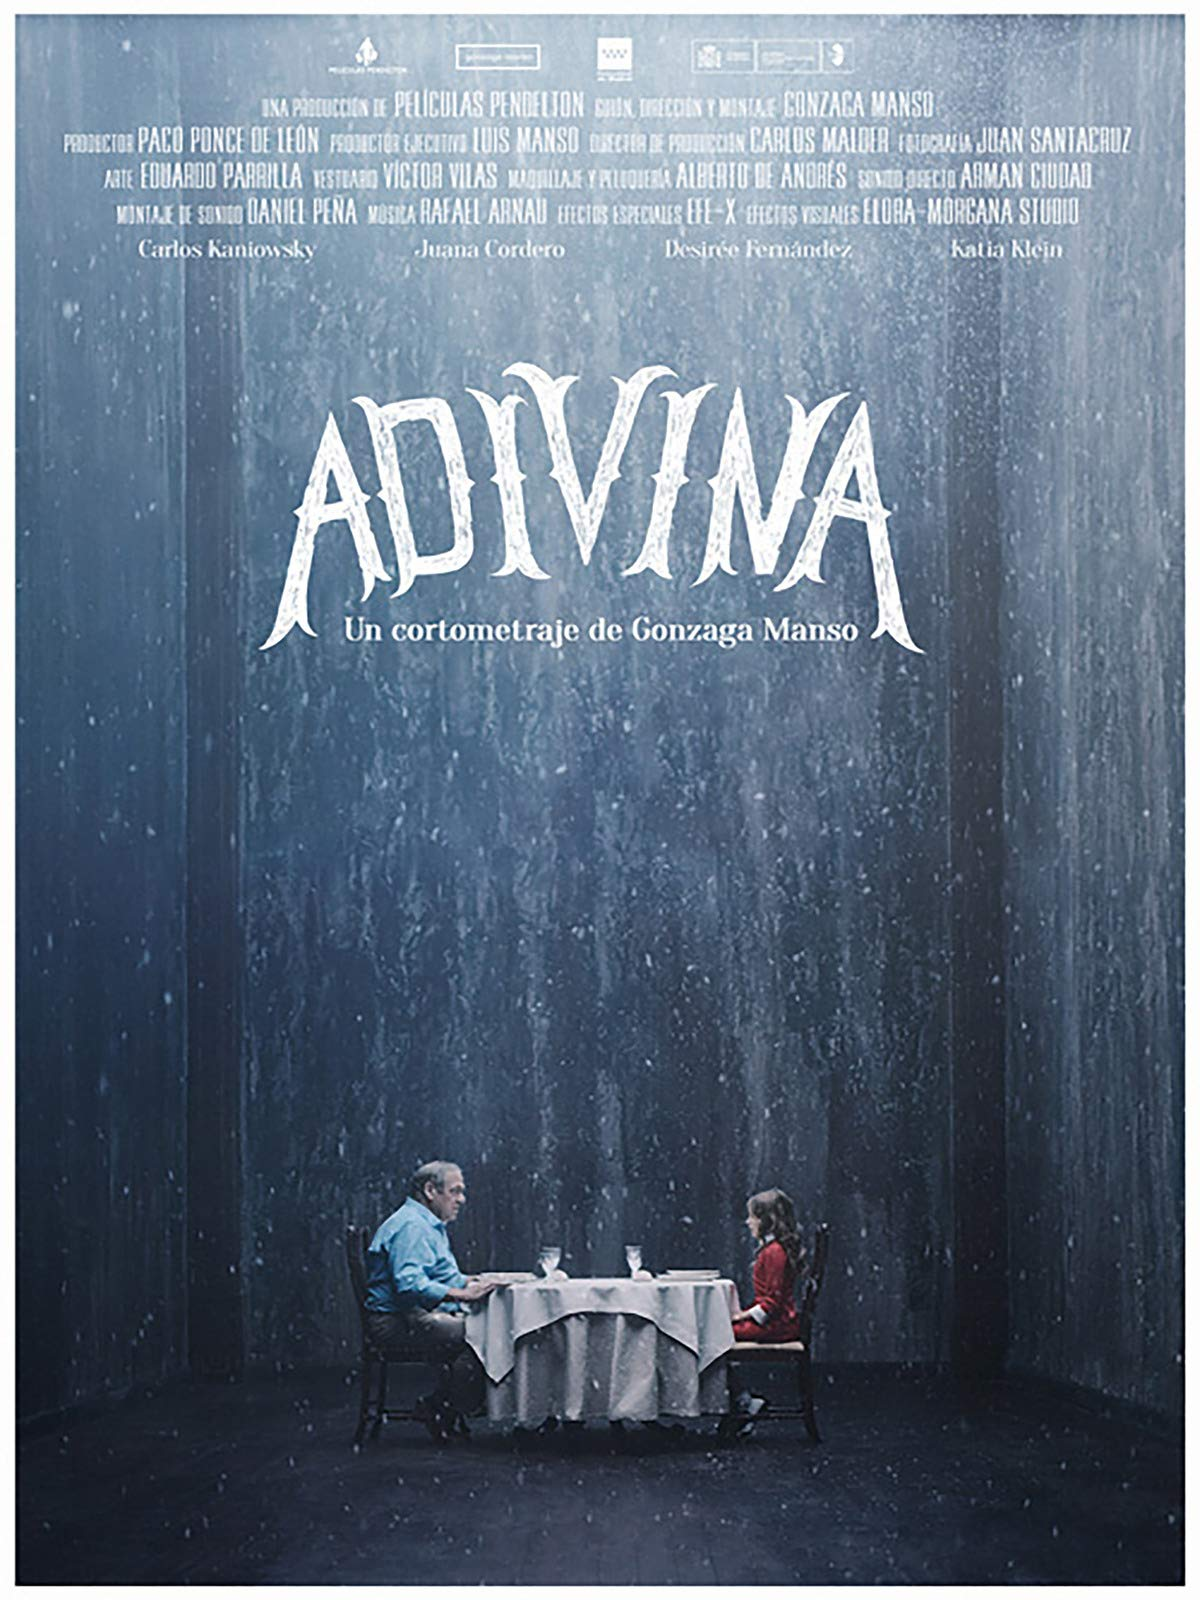 Amazon.com: Watch Adivina (Fortune-Teller) | Prime Video